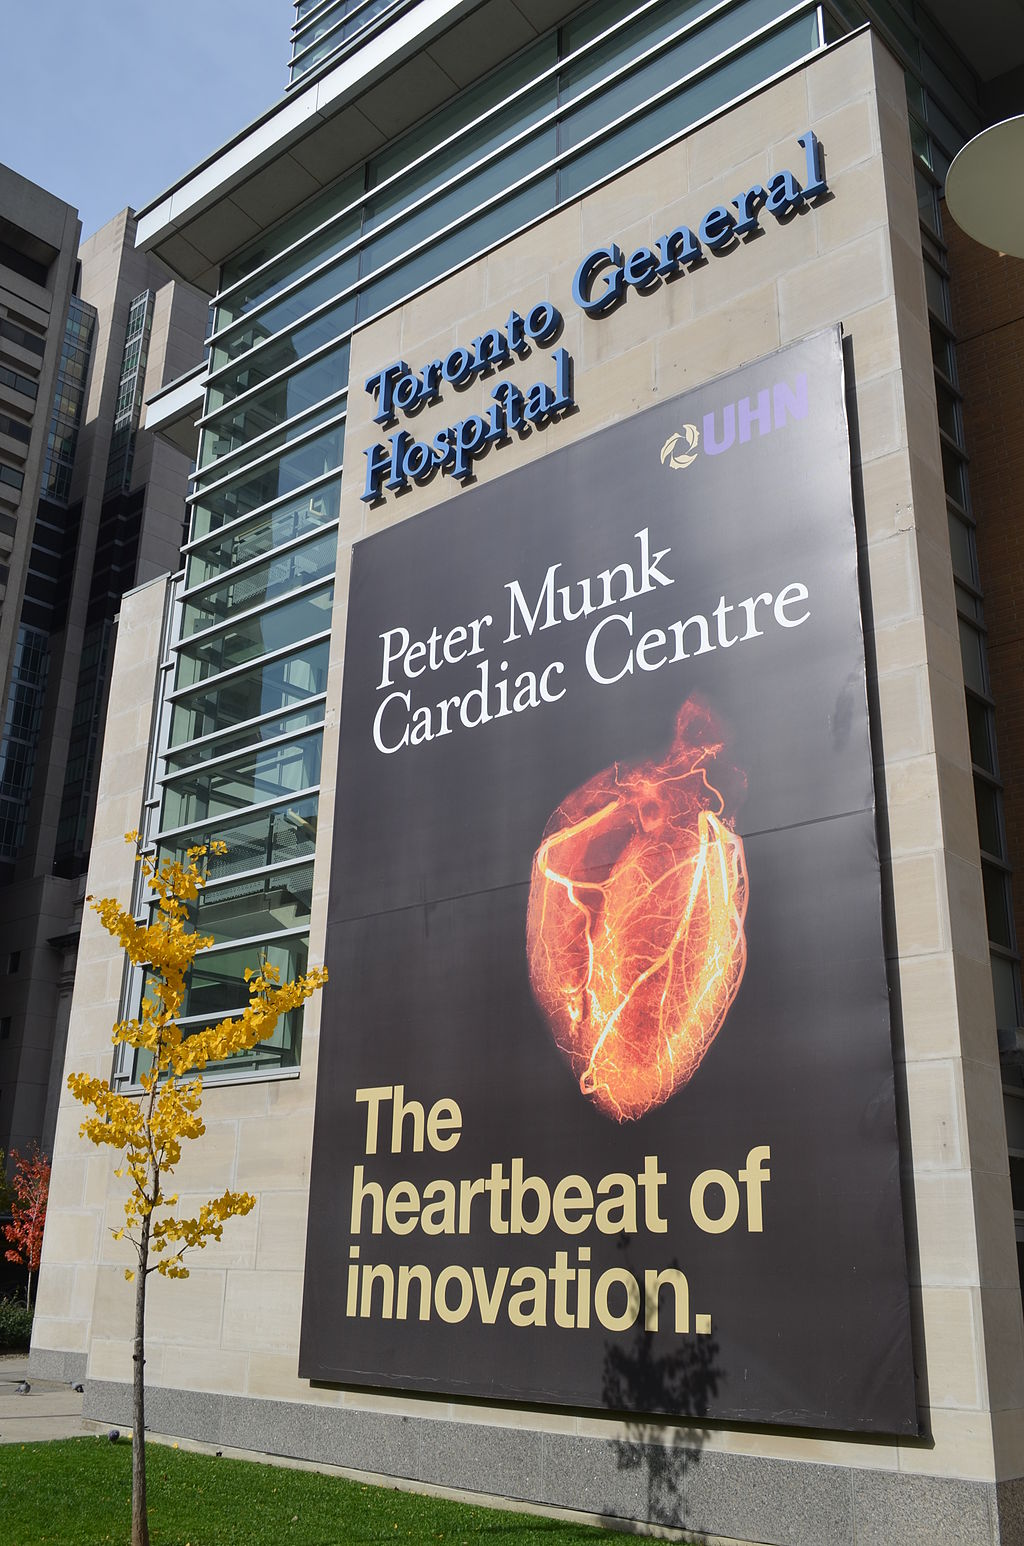 The Peter Munk Cardiac Centre at the Toronto General Hospital. Credit: Barrick Gold.